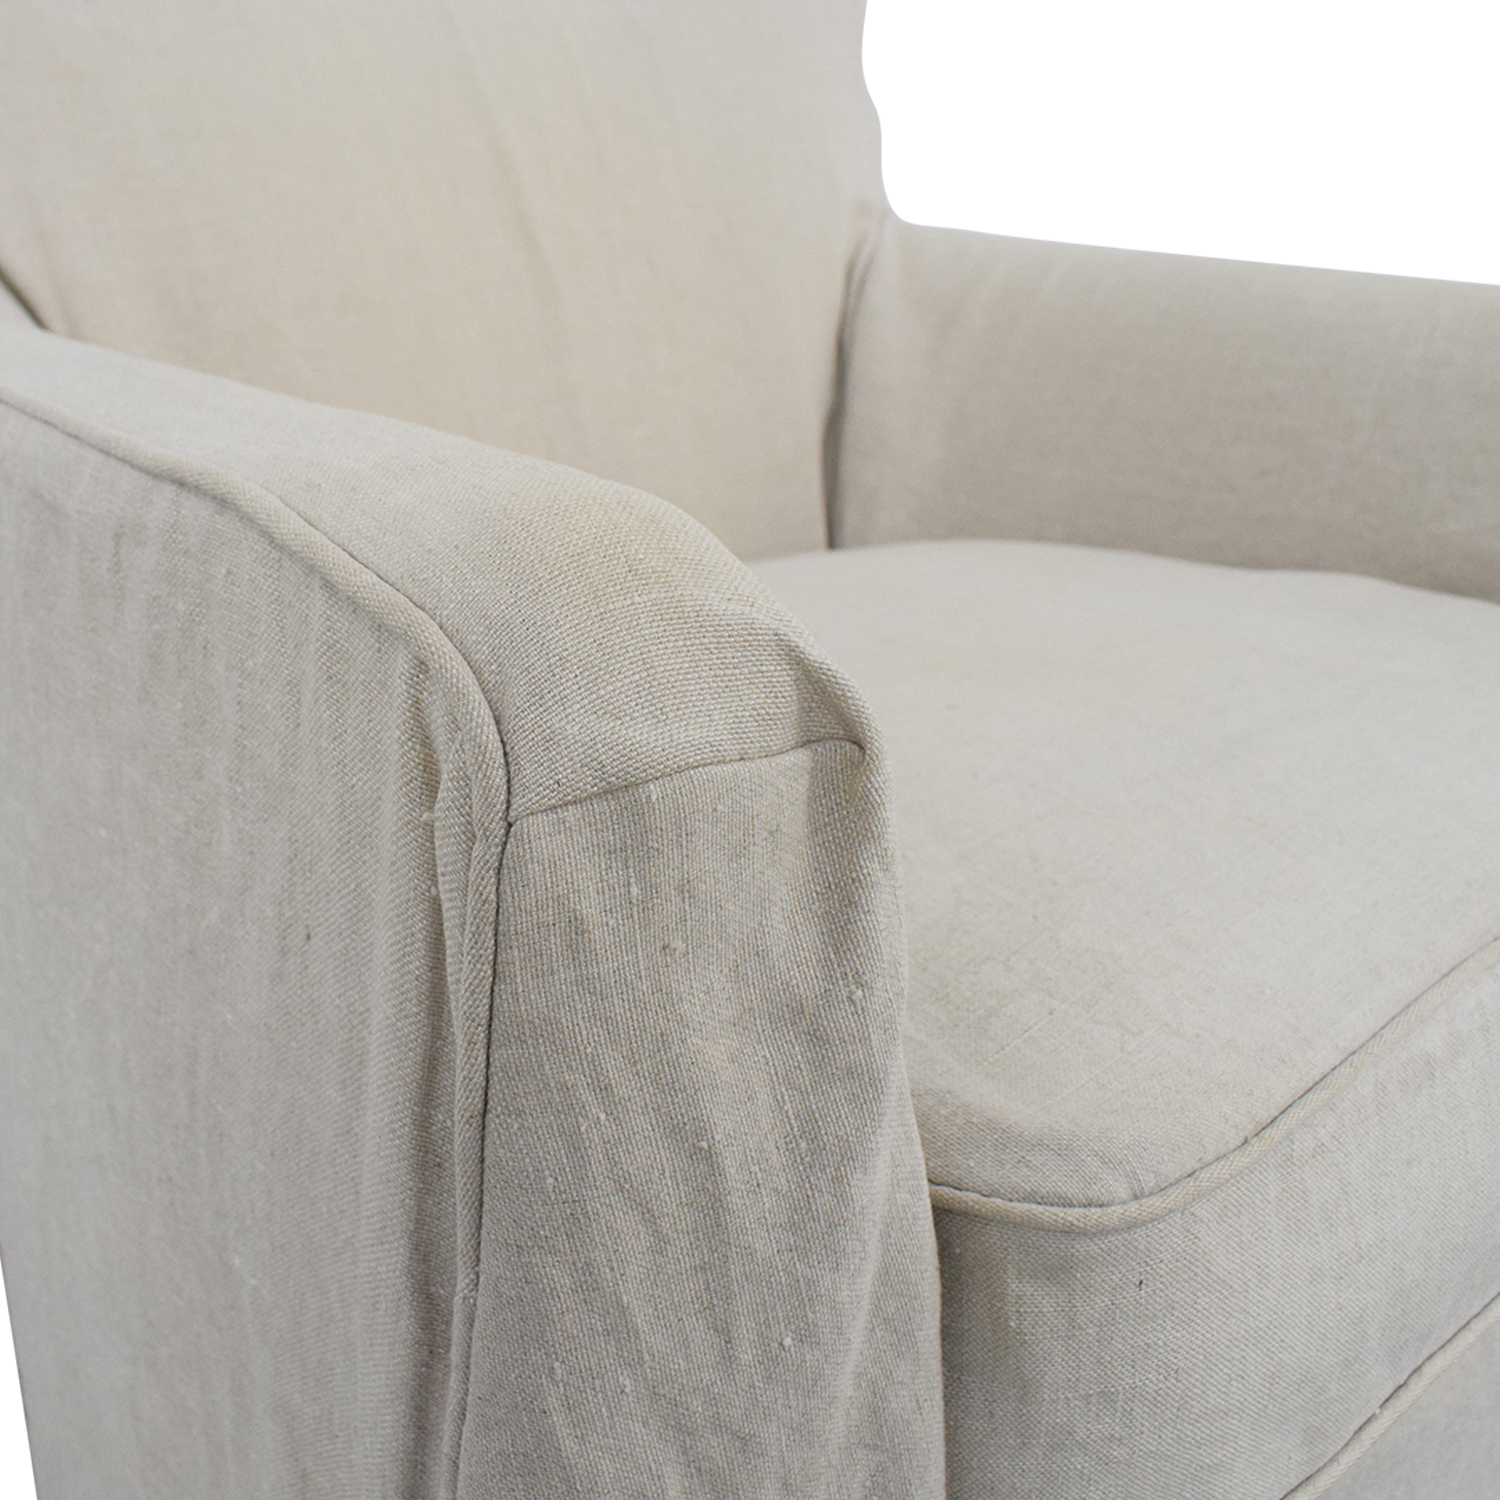 buy Crate & Barrel Linen Slipcovered Armchair Crate & Barrel